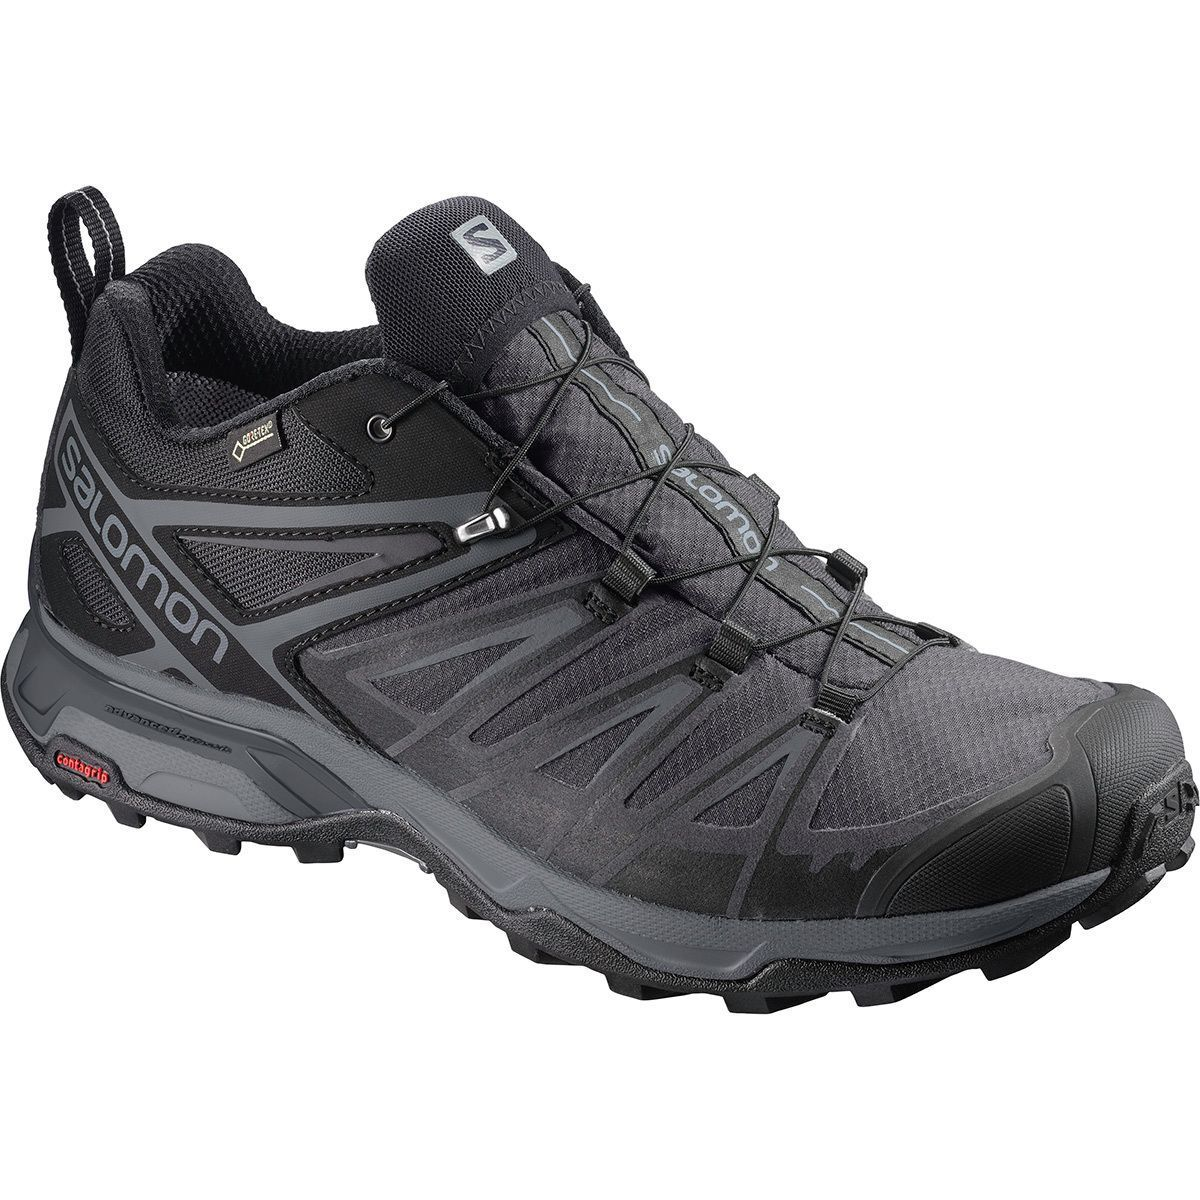 054fb458 Salomon Men's X Ultra 3 GTX Waterproof Hiking Trail Shoes Black